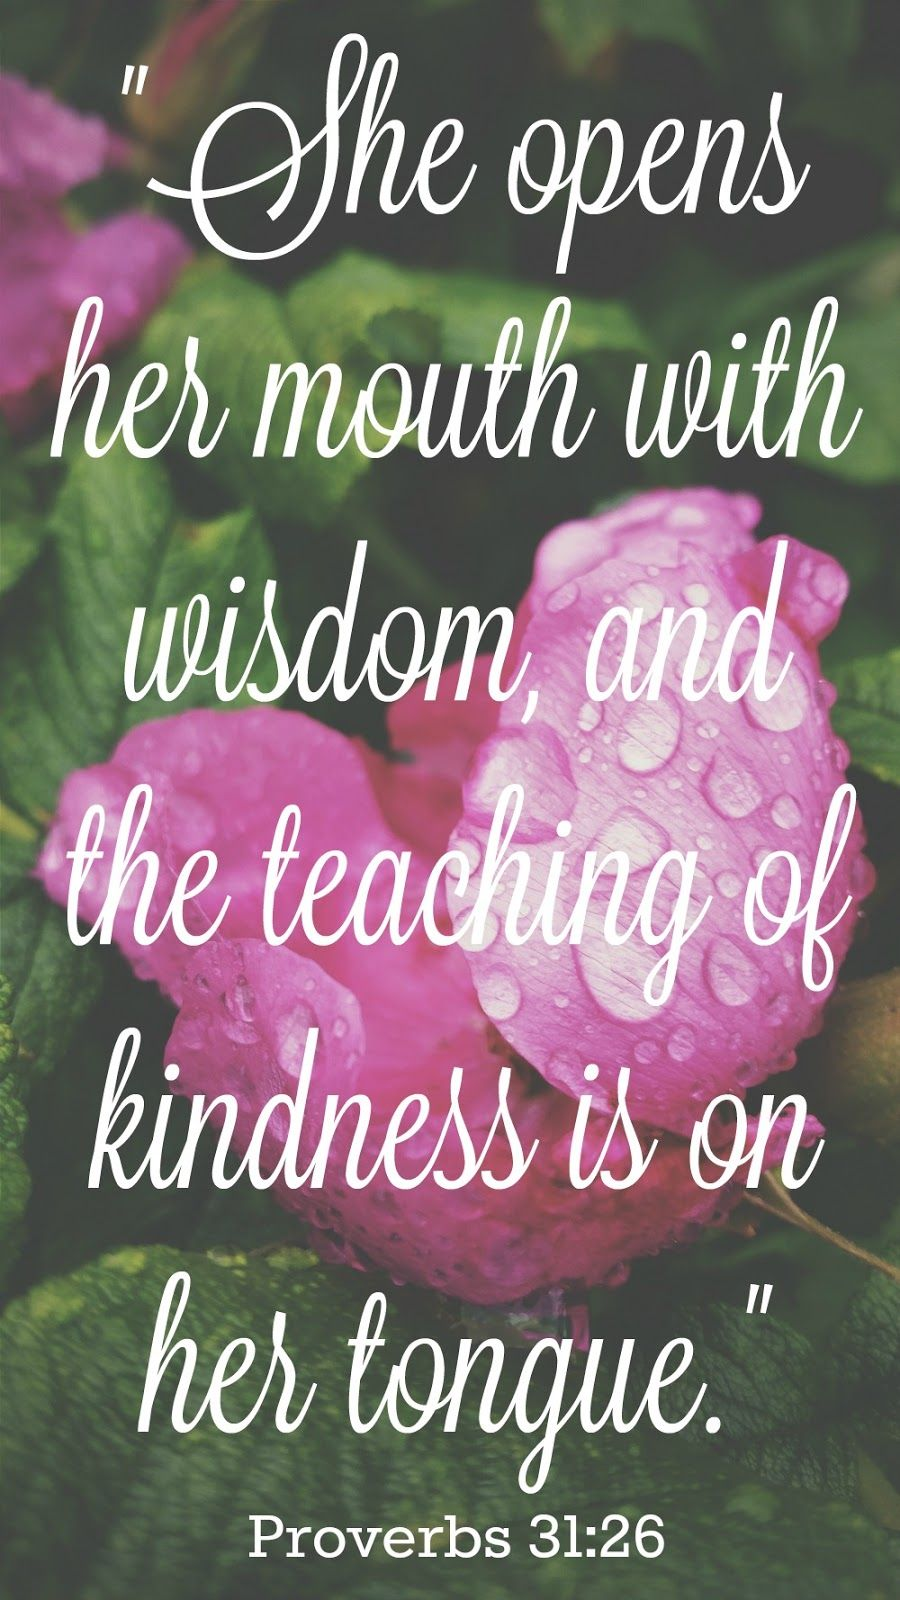 Bible Quotes About Mothers One Word For 2016 Kindness  Scripture  Pinterest  Bible